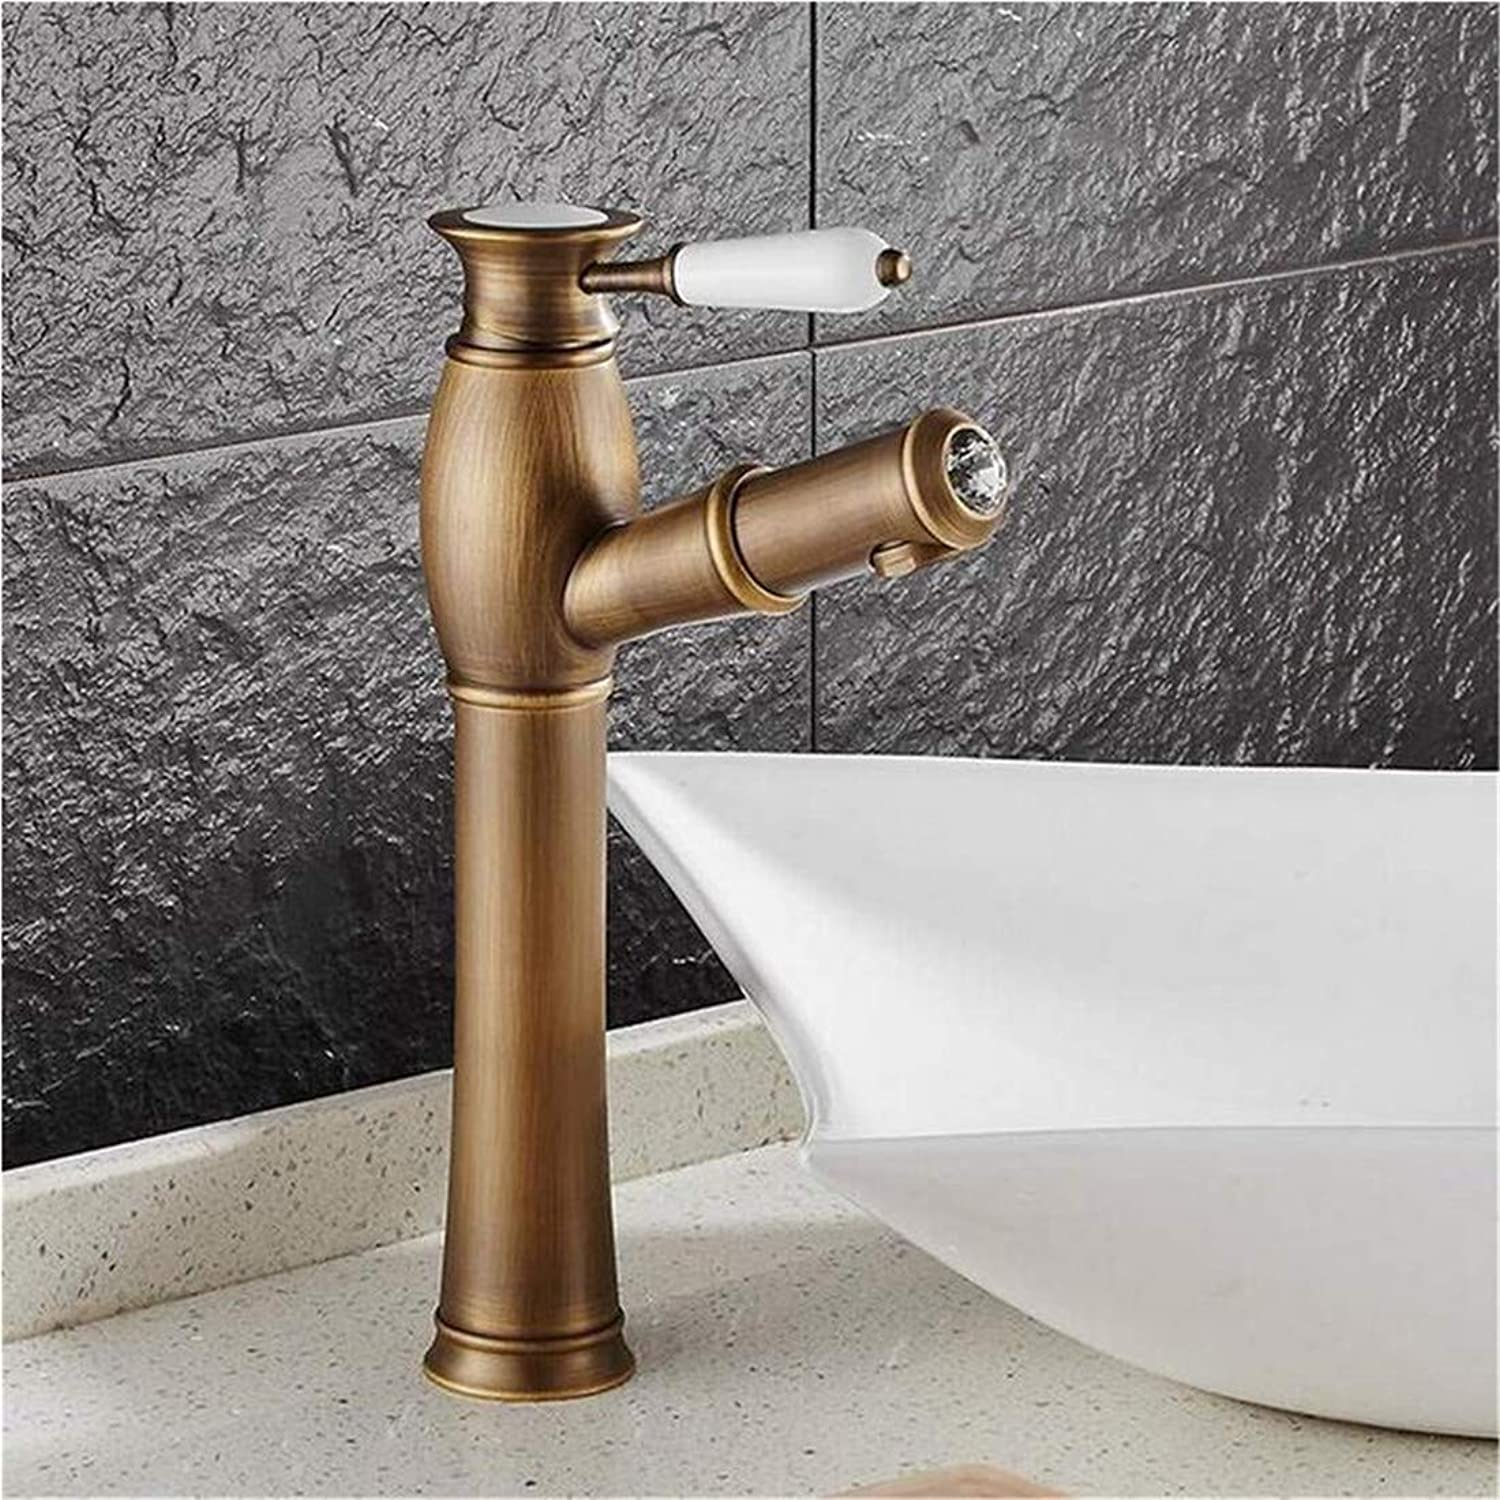 High Quality Kitchen Brass Stainless Steelshampoo Faucet Hot and Cold Mixer Taps Ceramic Handle with Diamonds Kitchen Faucet